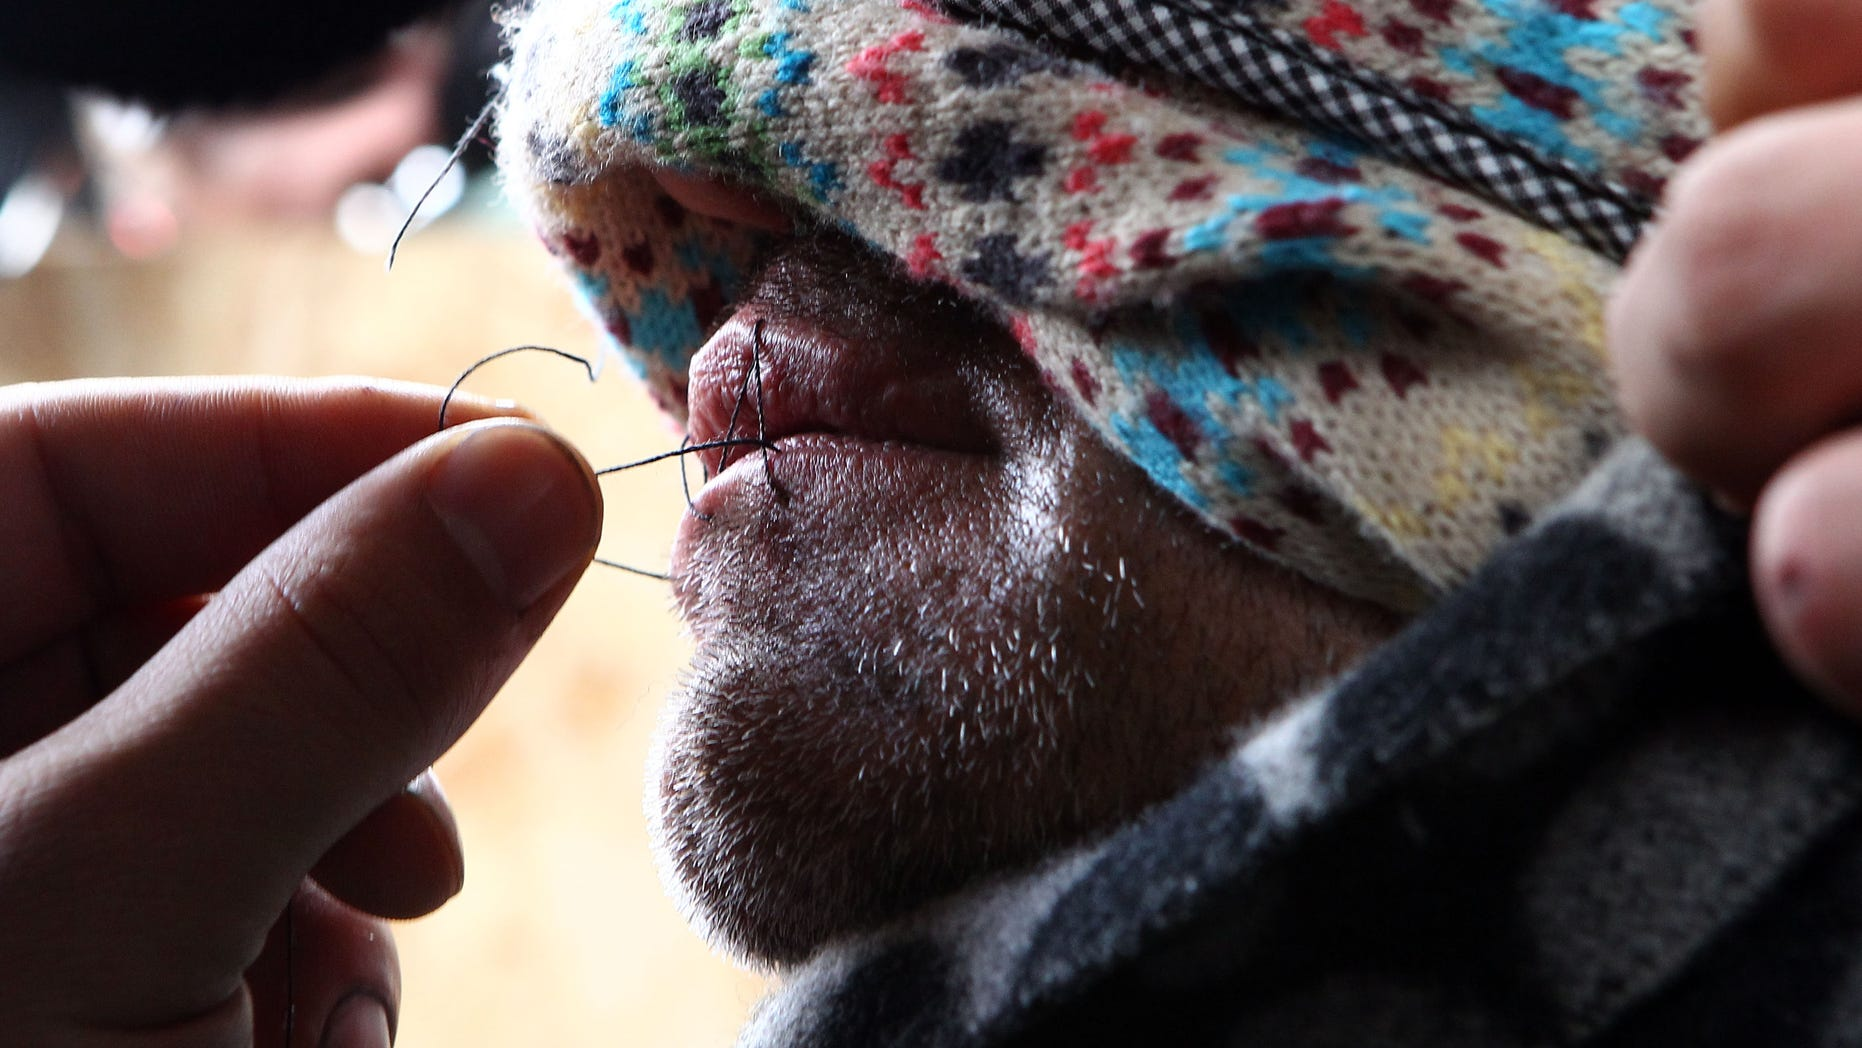 A hooded unidentified migrant from Iran has his lips sewn, prior to a demonstration in an attempt to prevent the dismantling of makeshift dwellings at a camp near Calais, France, Thursday March 3, 2016.  (AP Photo/Michel Spingler)